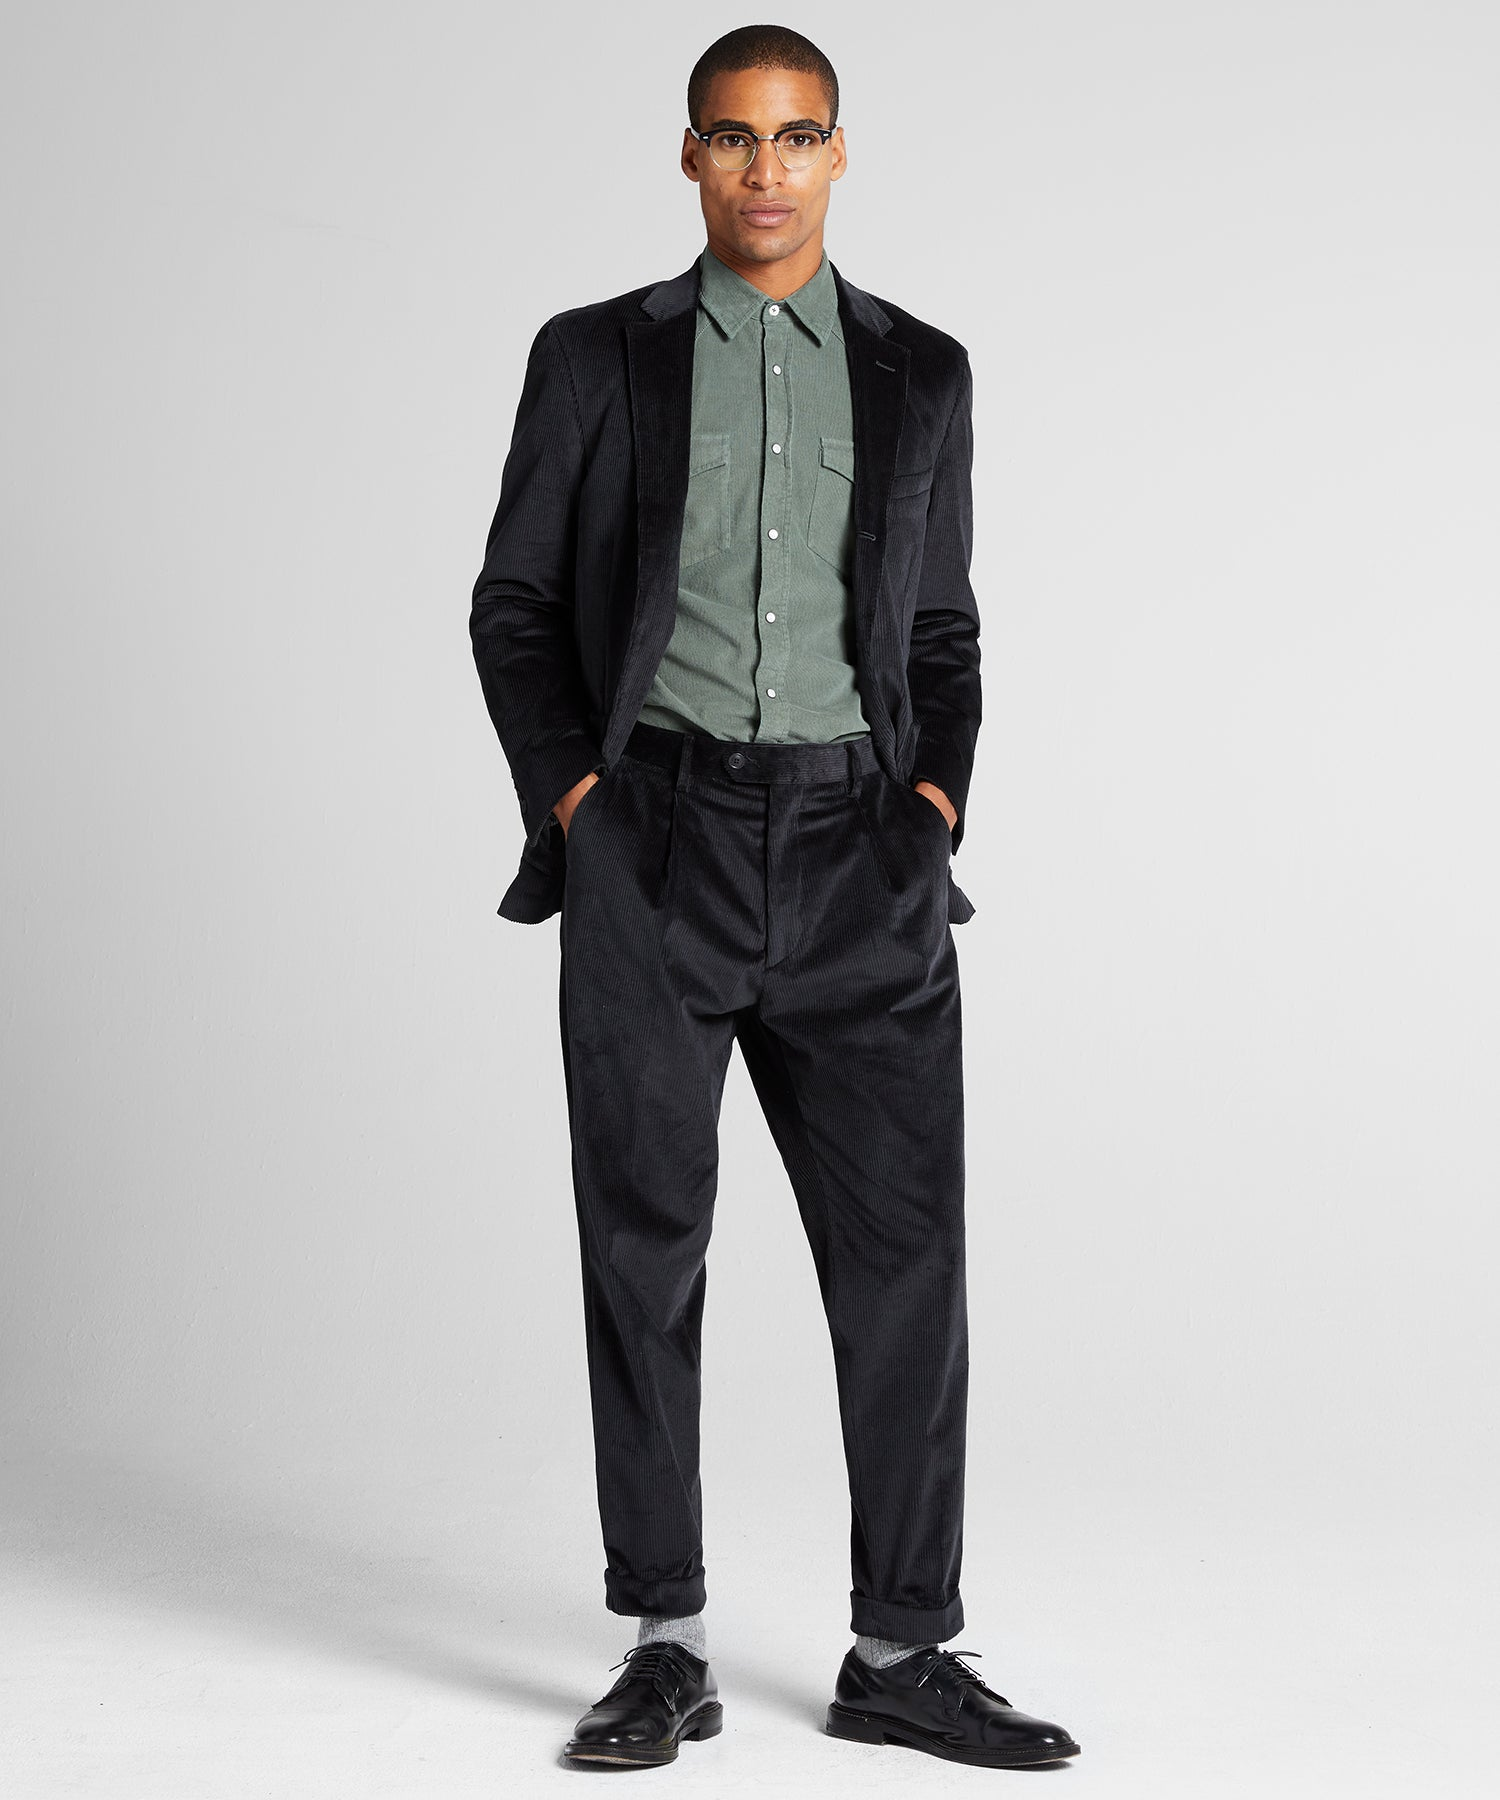 Corduroy Madison Traveler Suit in Charcoal